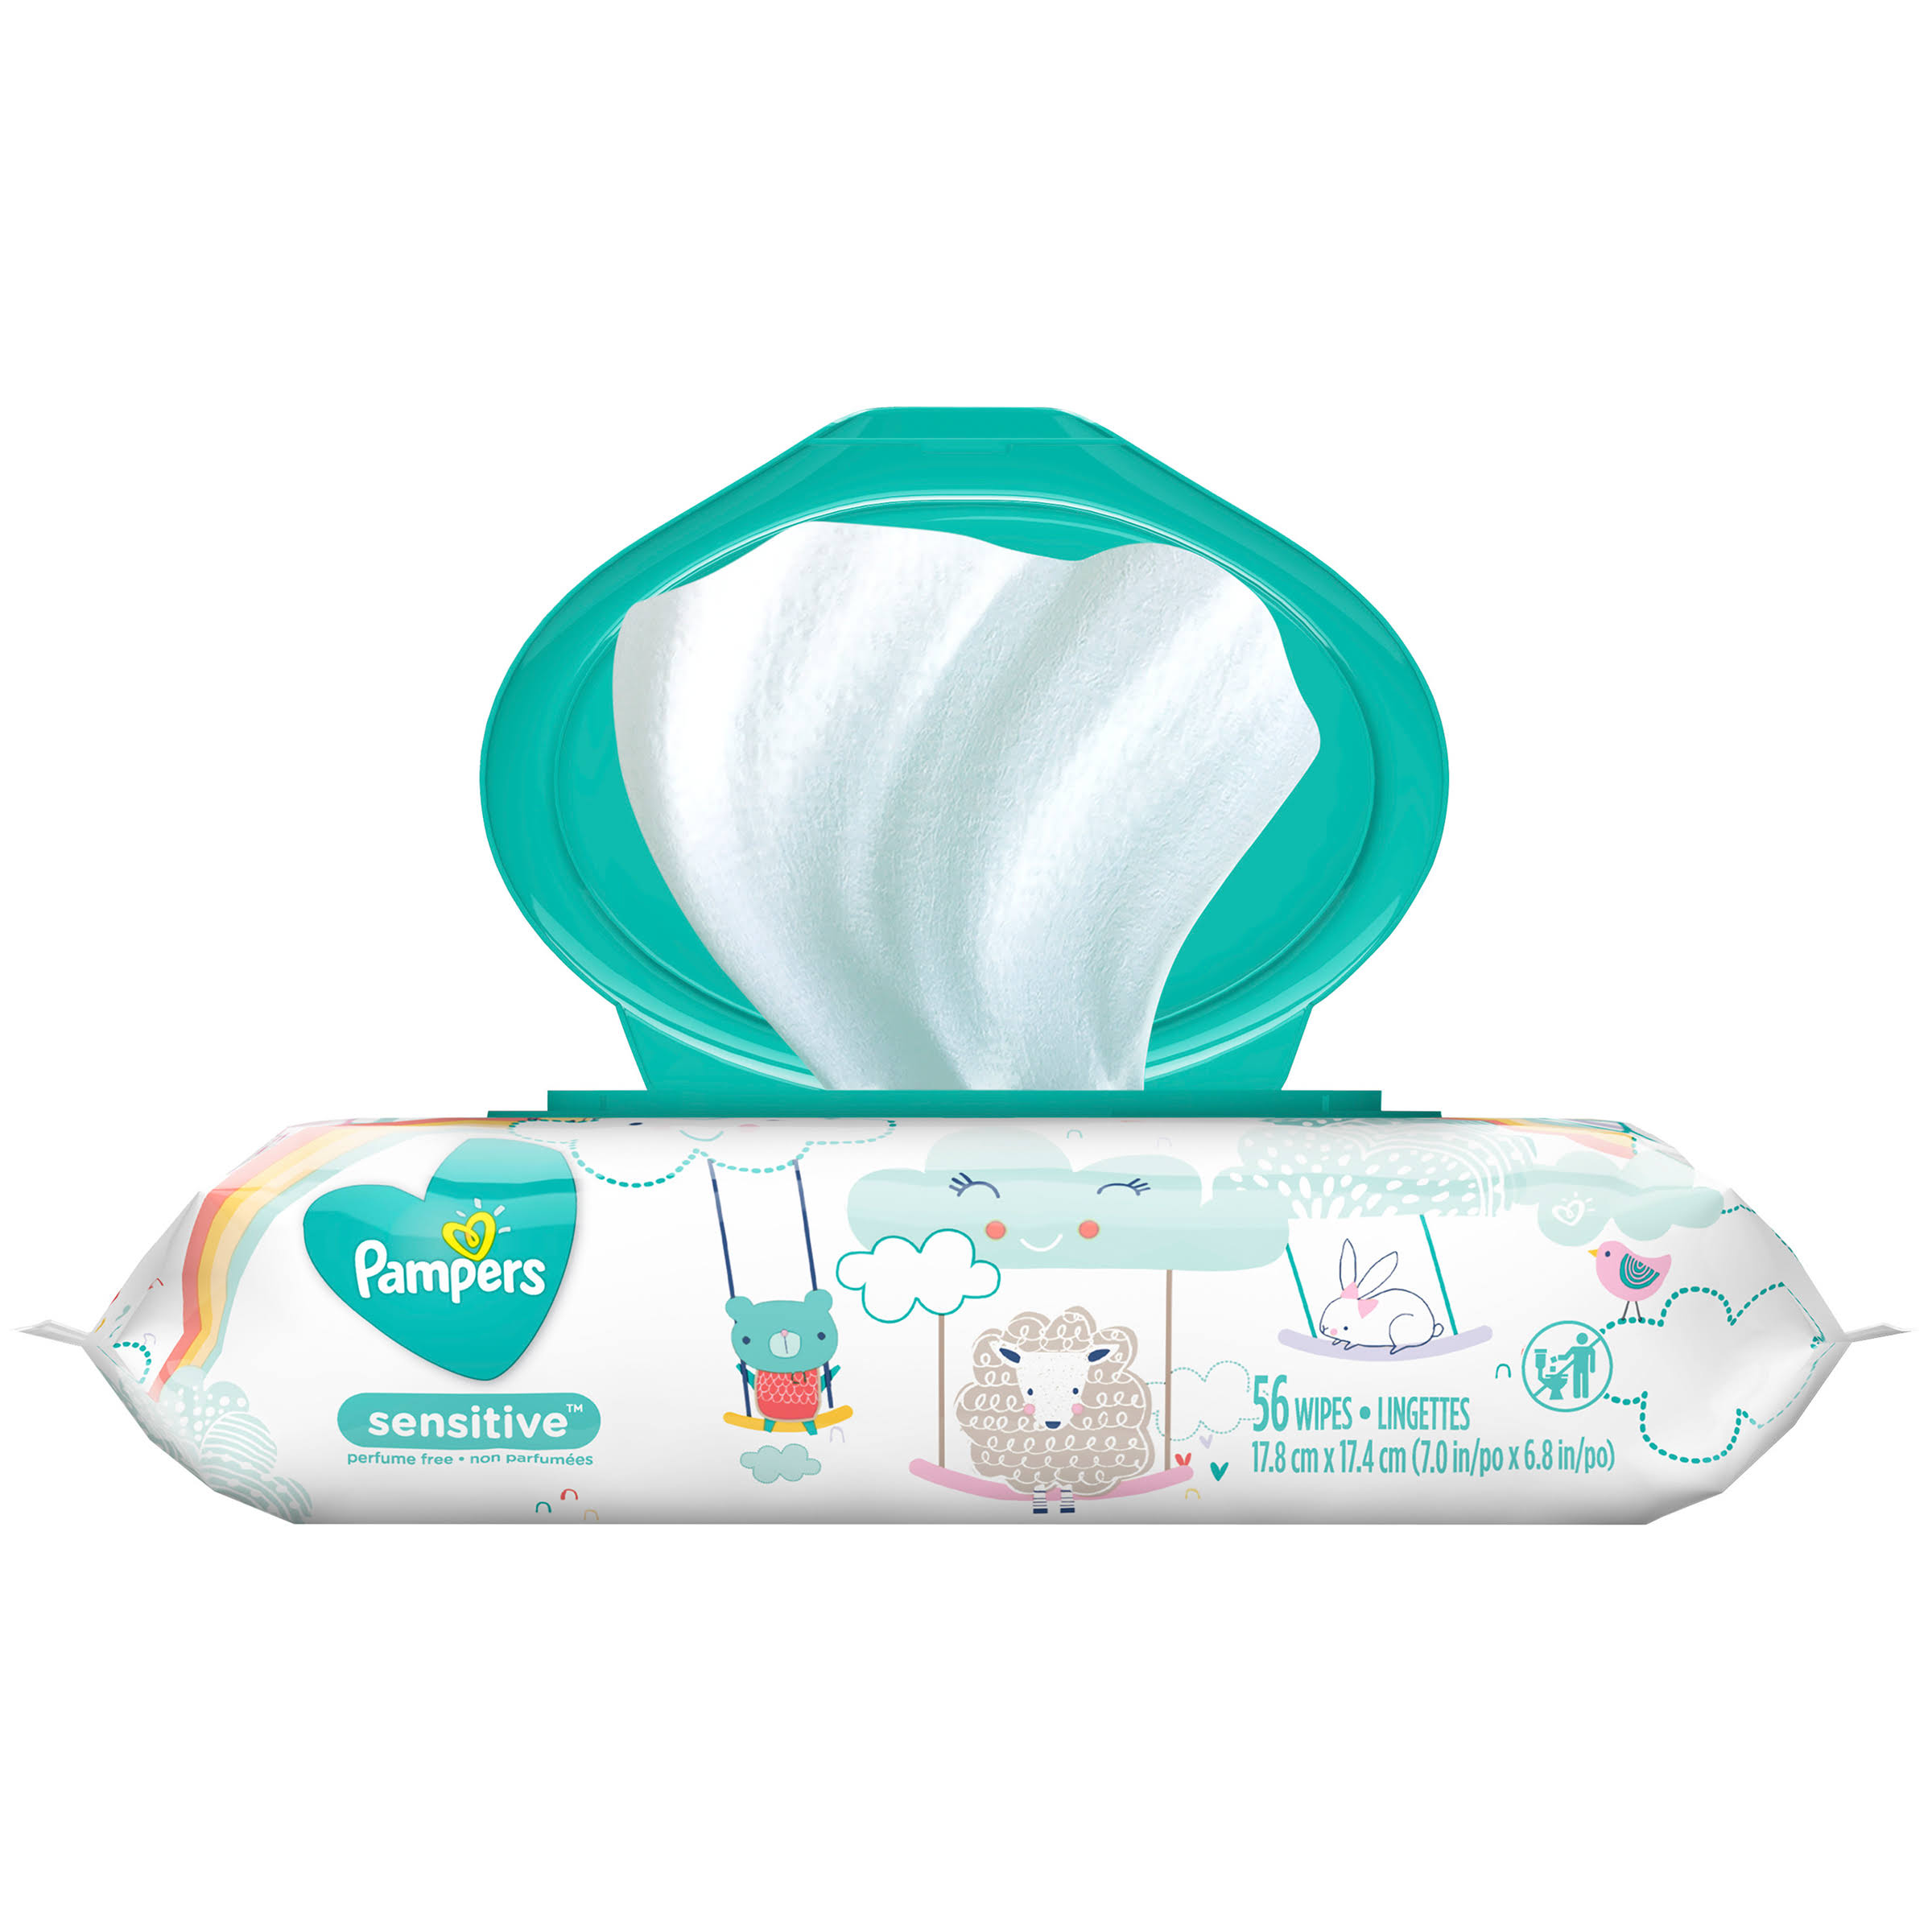 Pampers Sensitive Wipes - 56 Pack